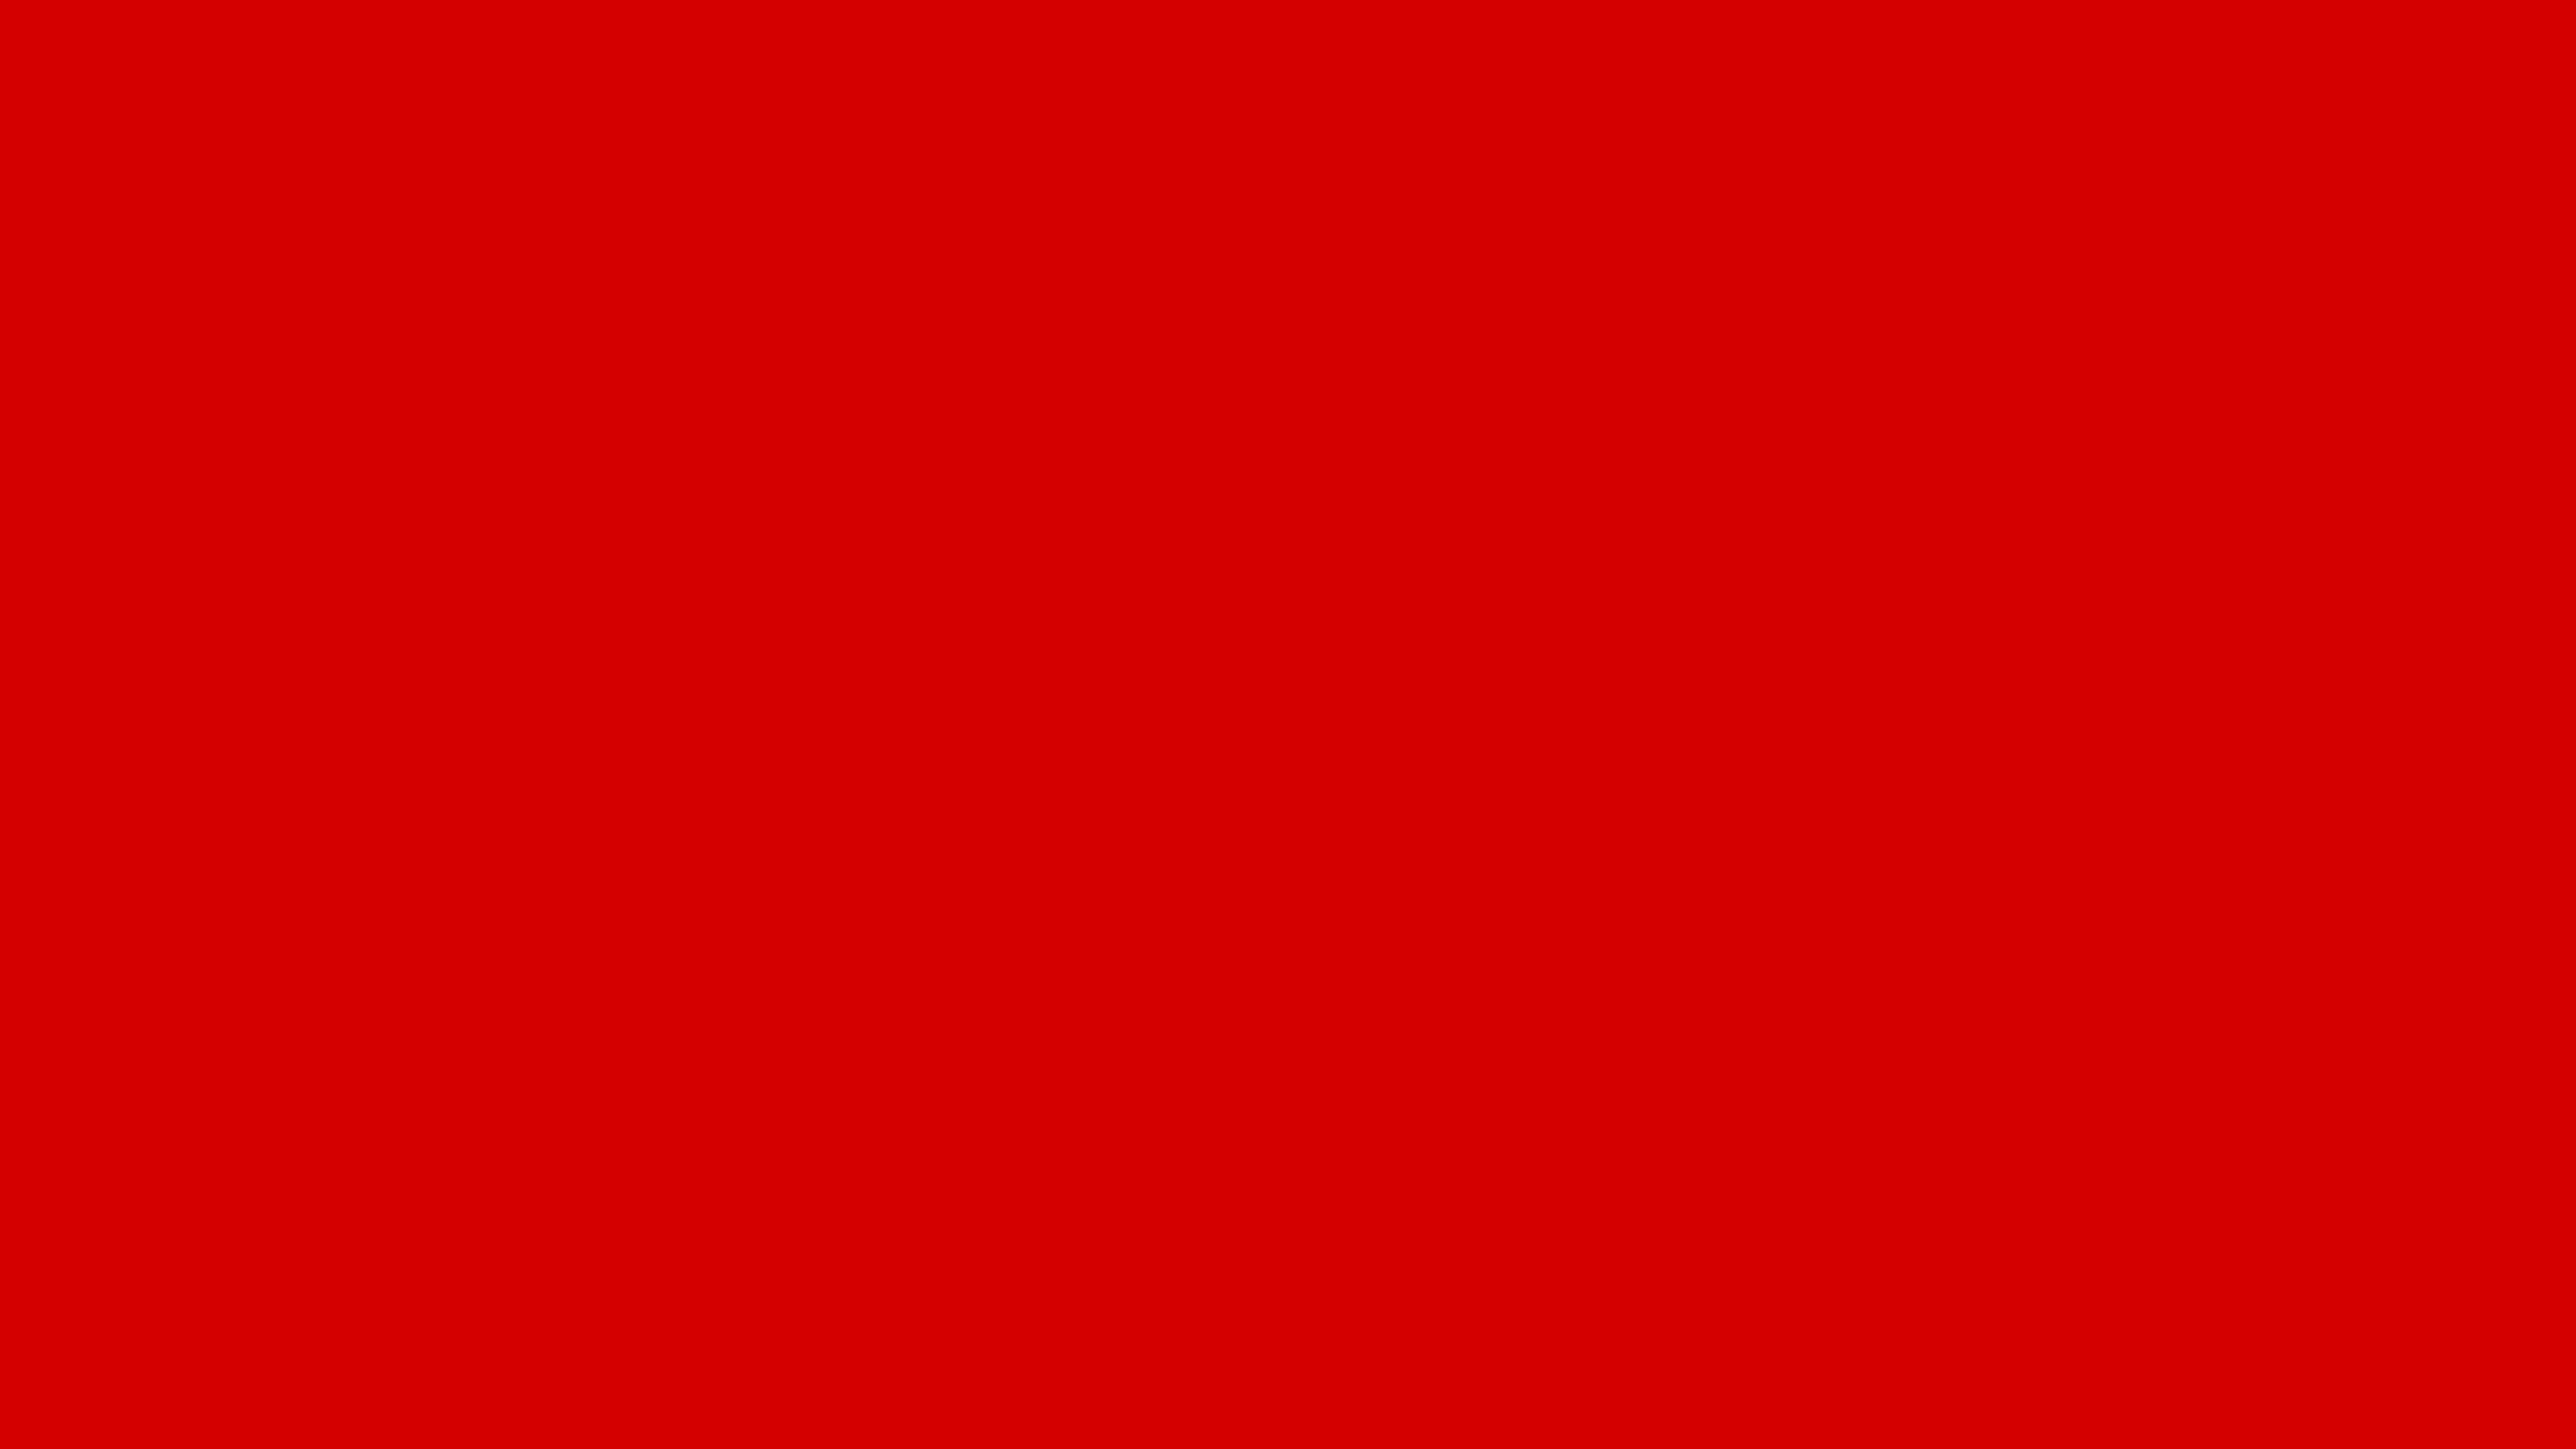 3840x2160 Rosso Corsa Solid Color Background